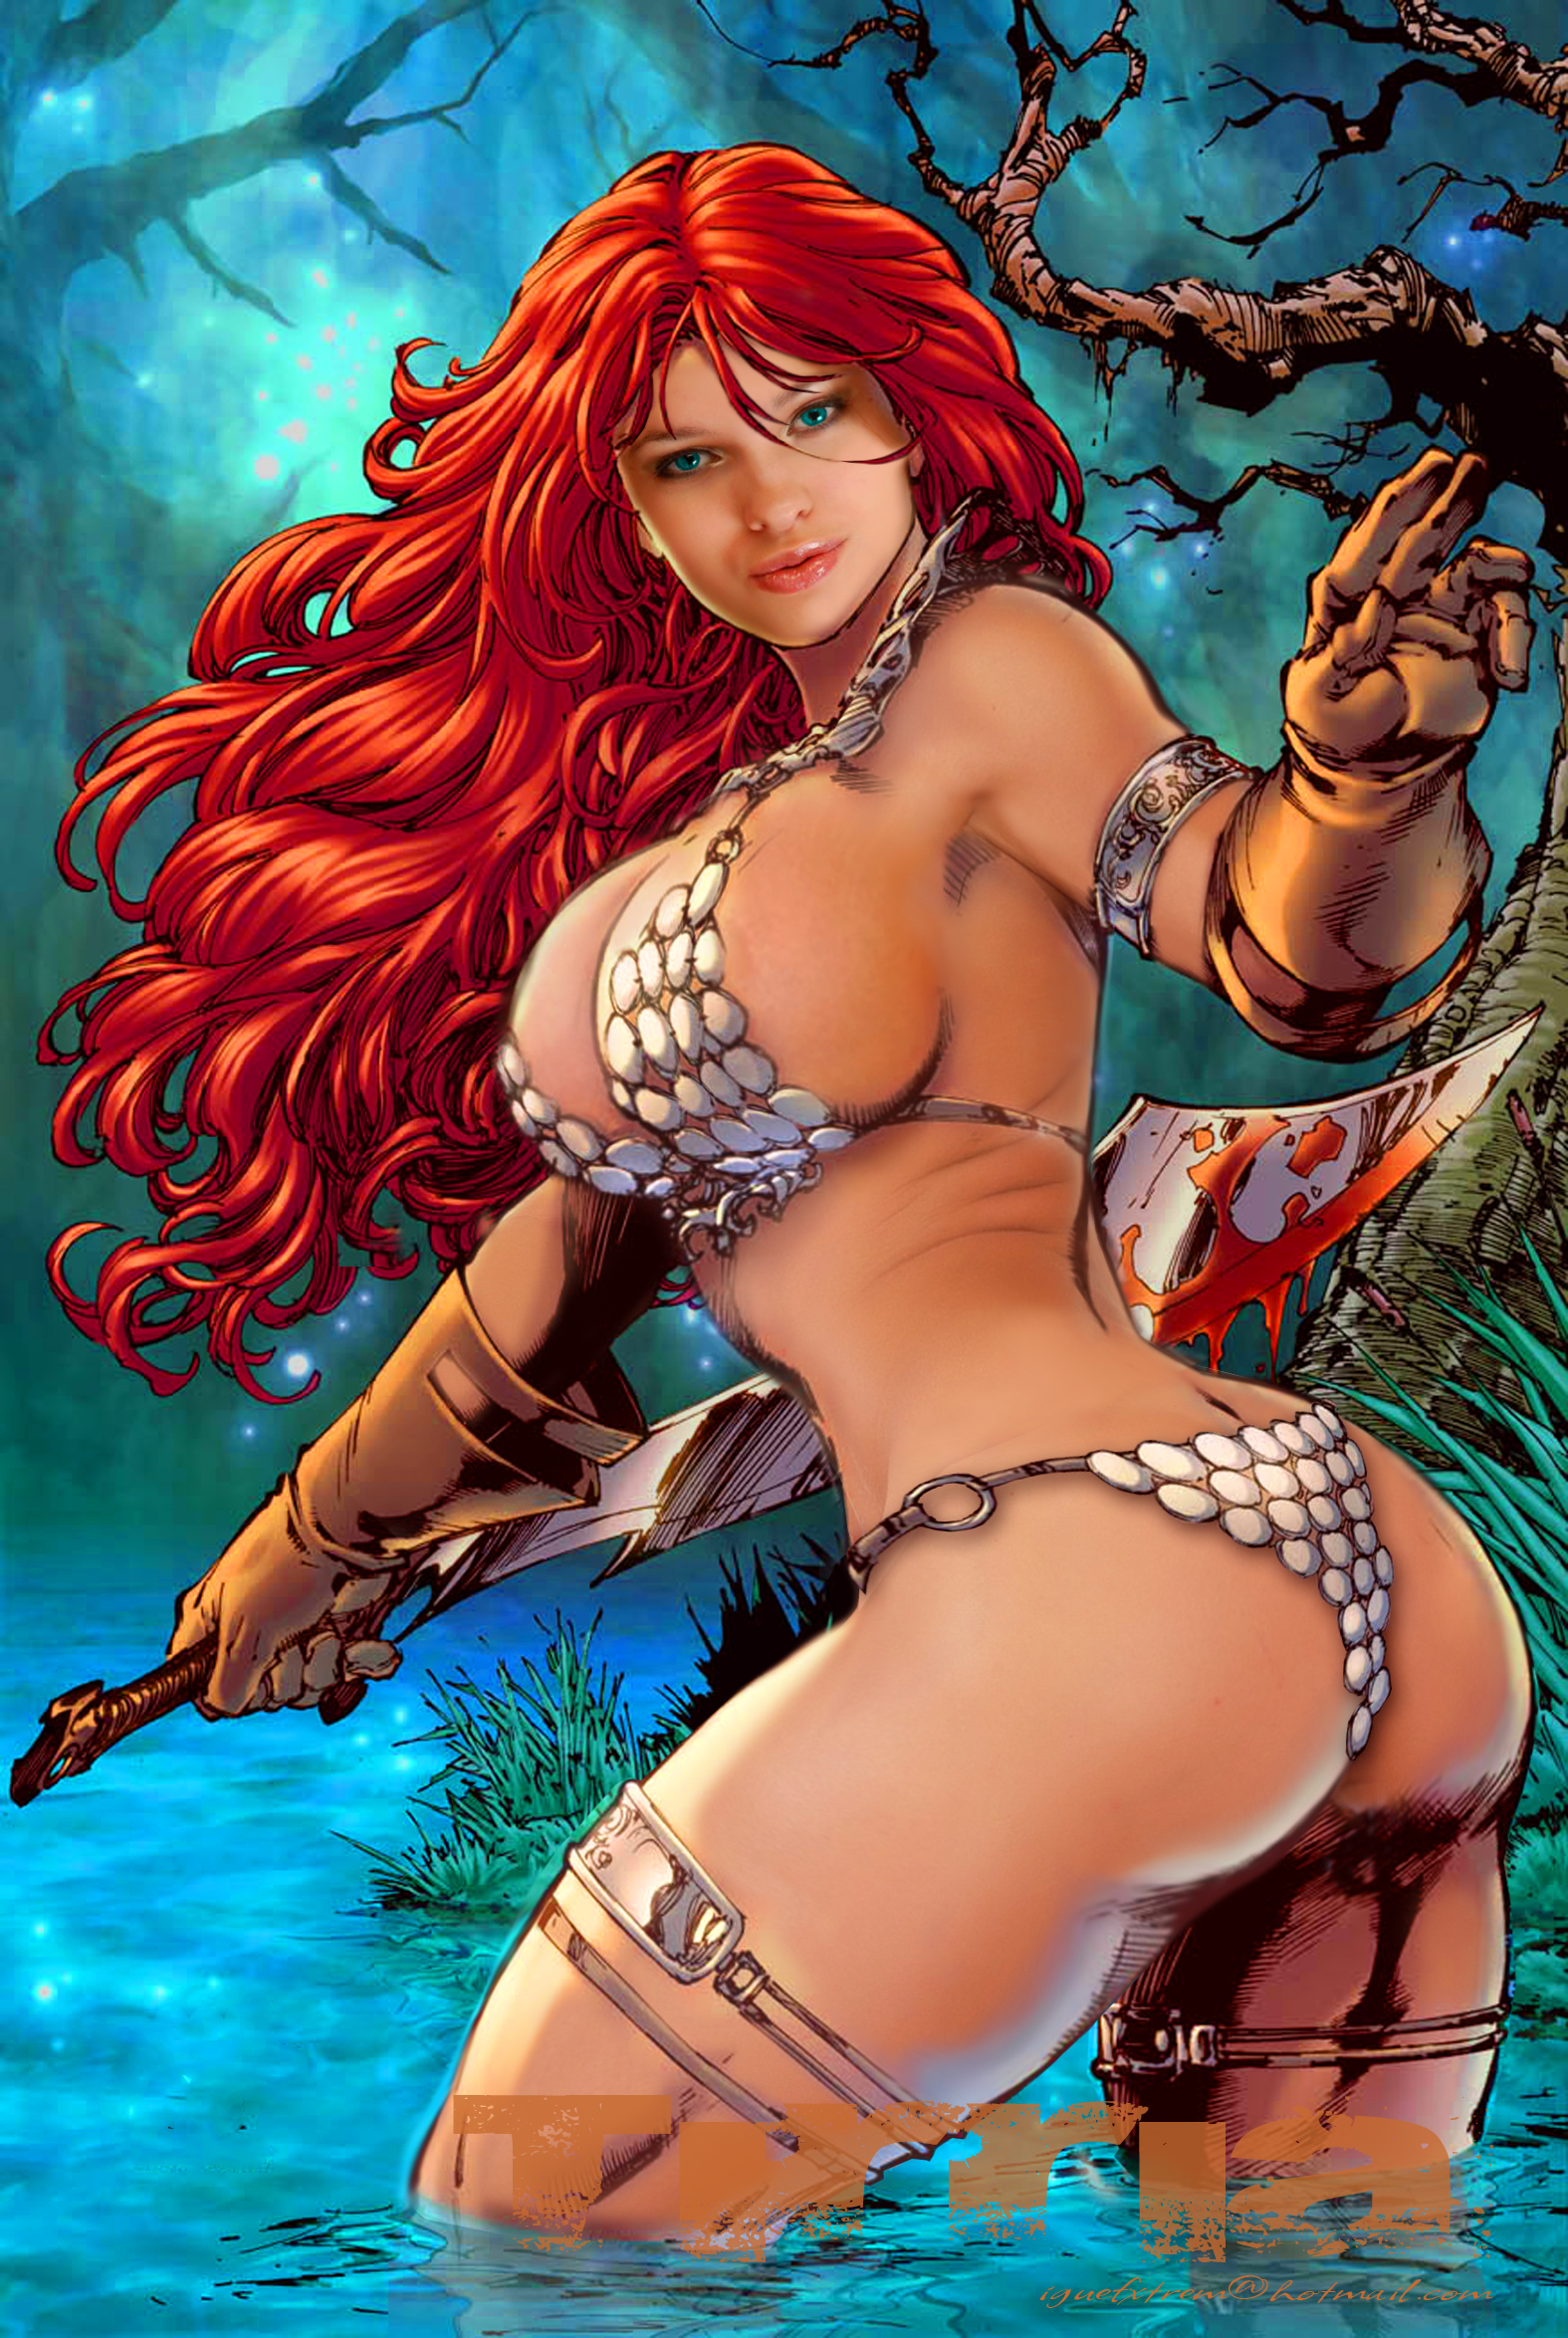 Red sonja tits myvideo, candice cardinelle go naked